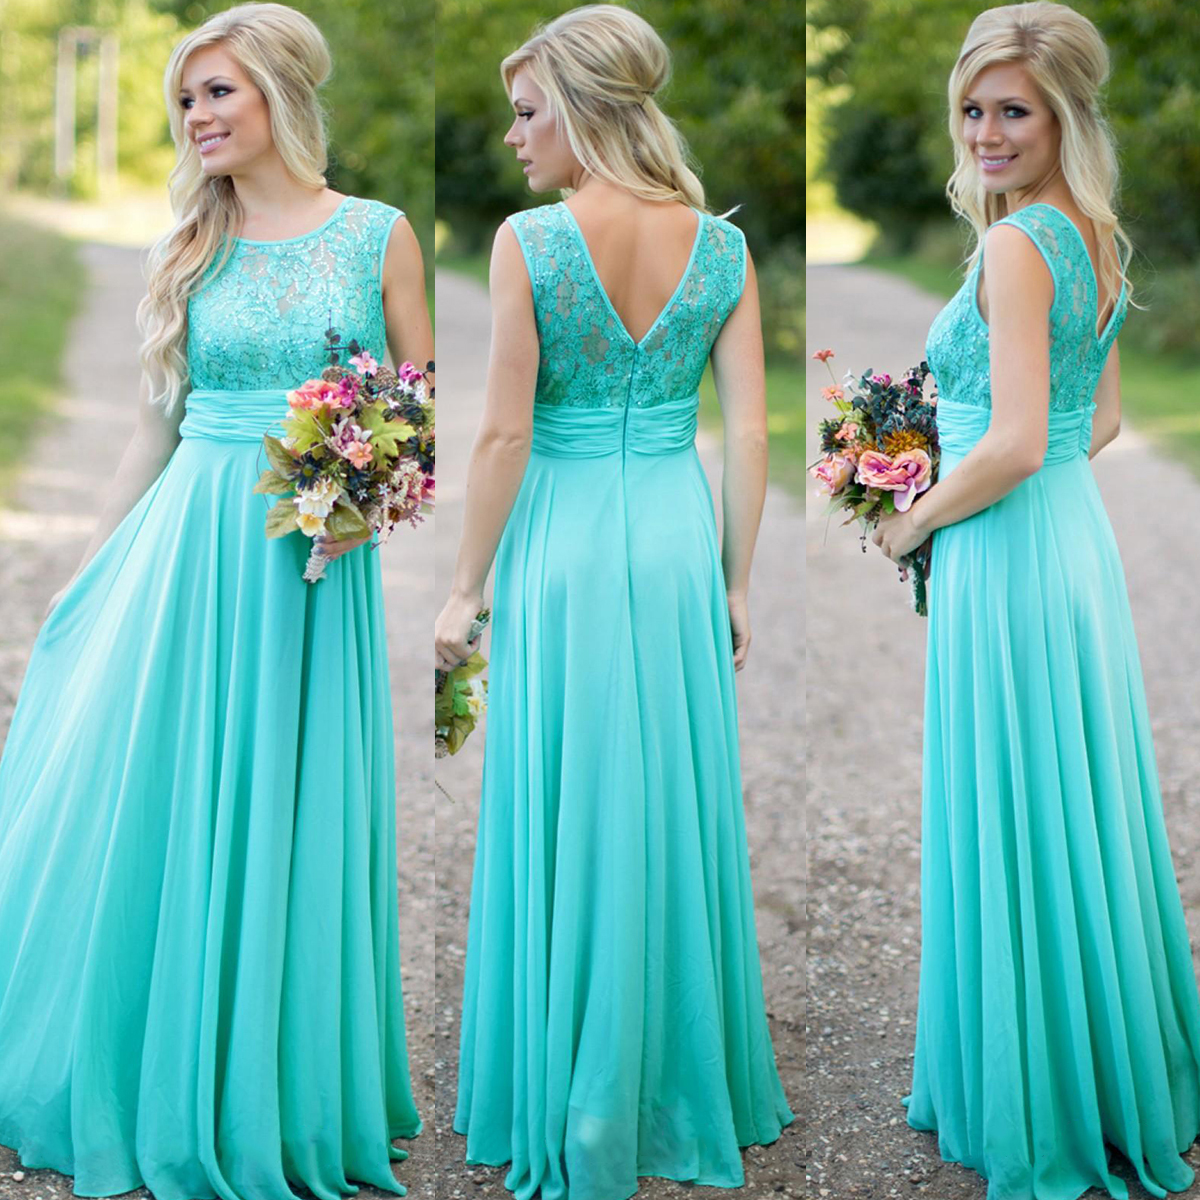 Turquoise Blue Bridesmaid Dress Lace Long Wedding Party Chiffon